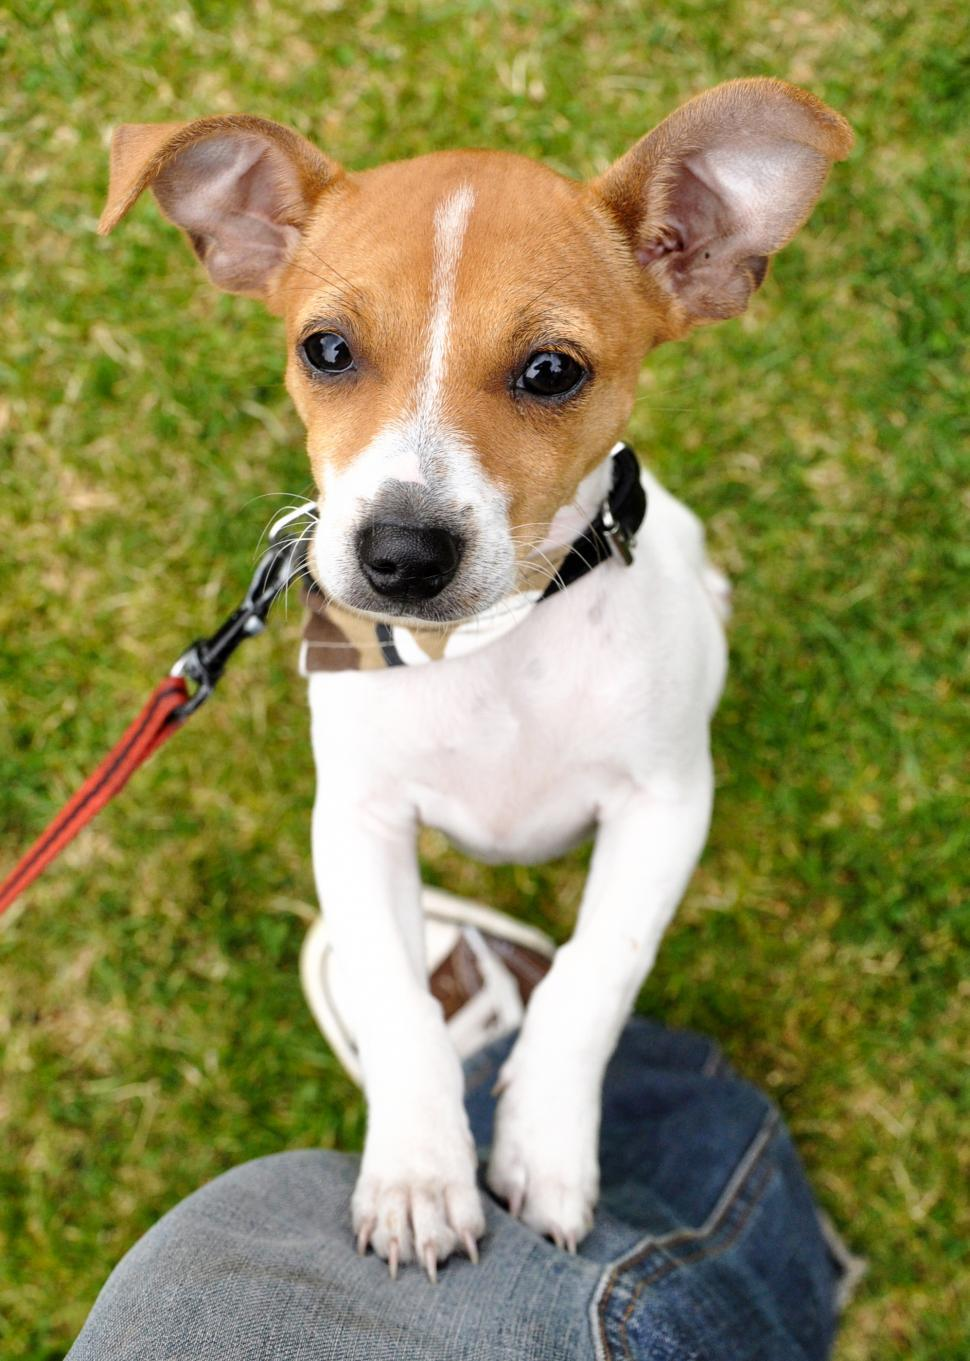 Download Free Stock HD Photo of Jack russel puppy jumping Online